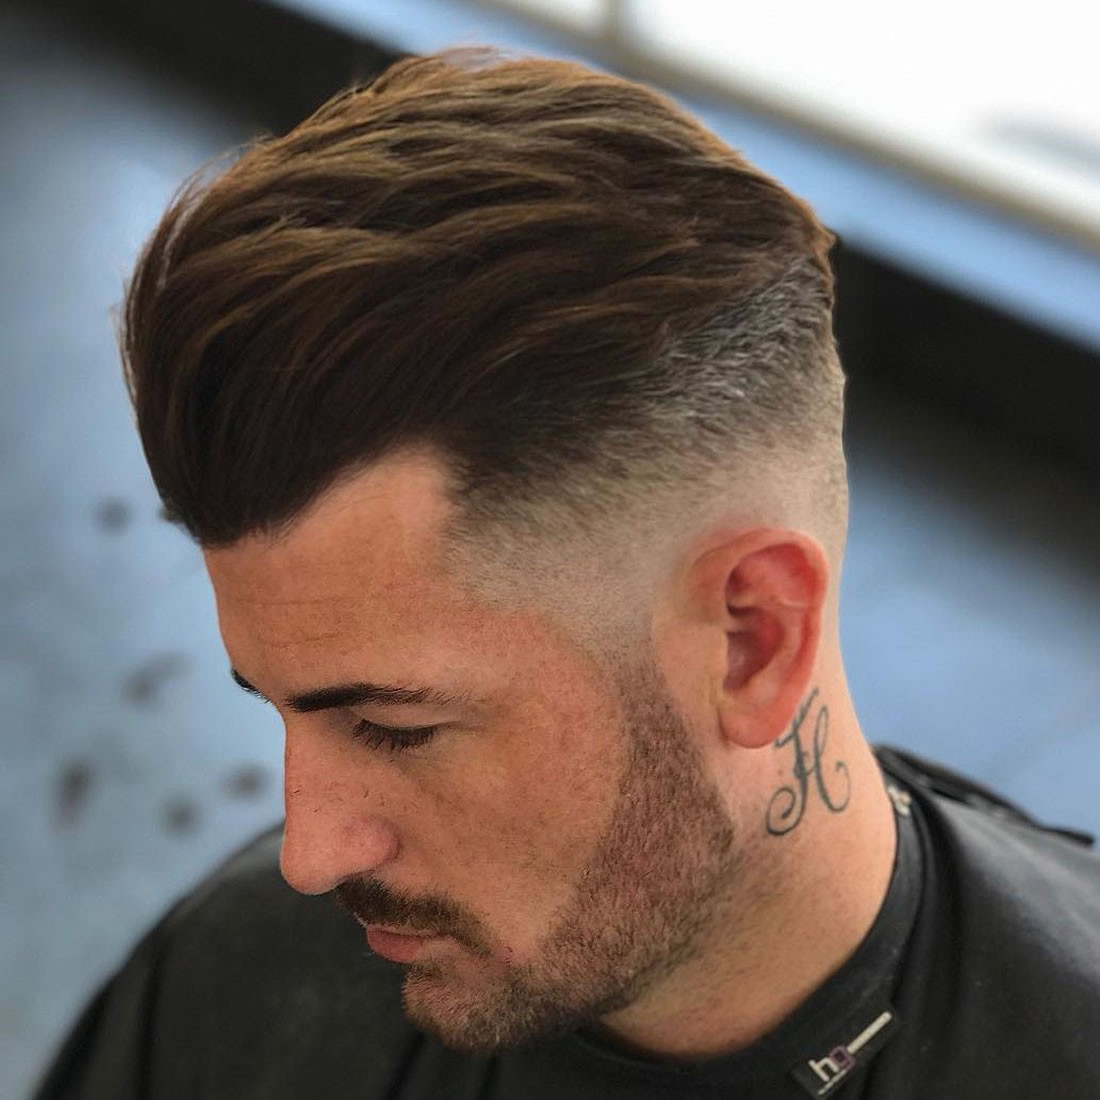 Best ideas about New Hairstyles Mens 2019 . Save or Pin Men's Hairstyles 2018 – 2019 Now.